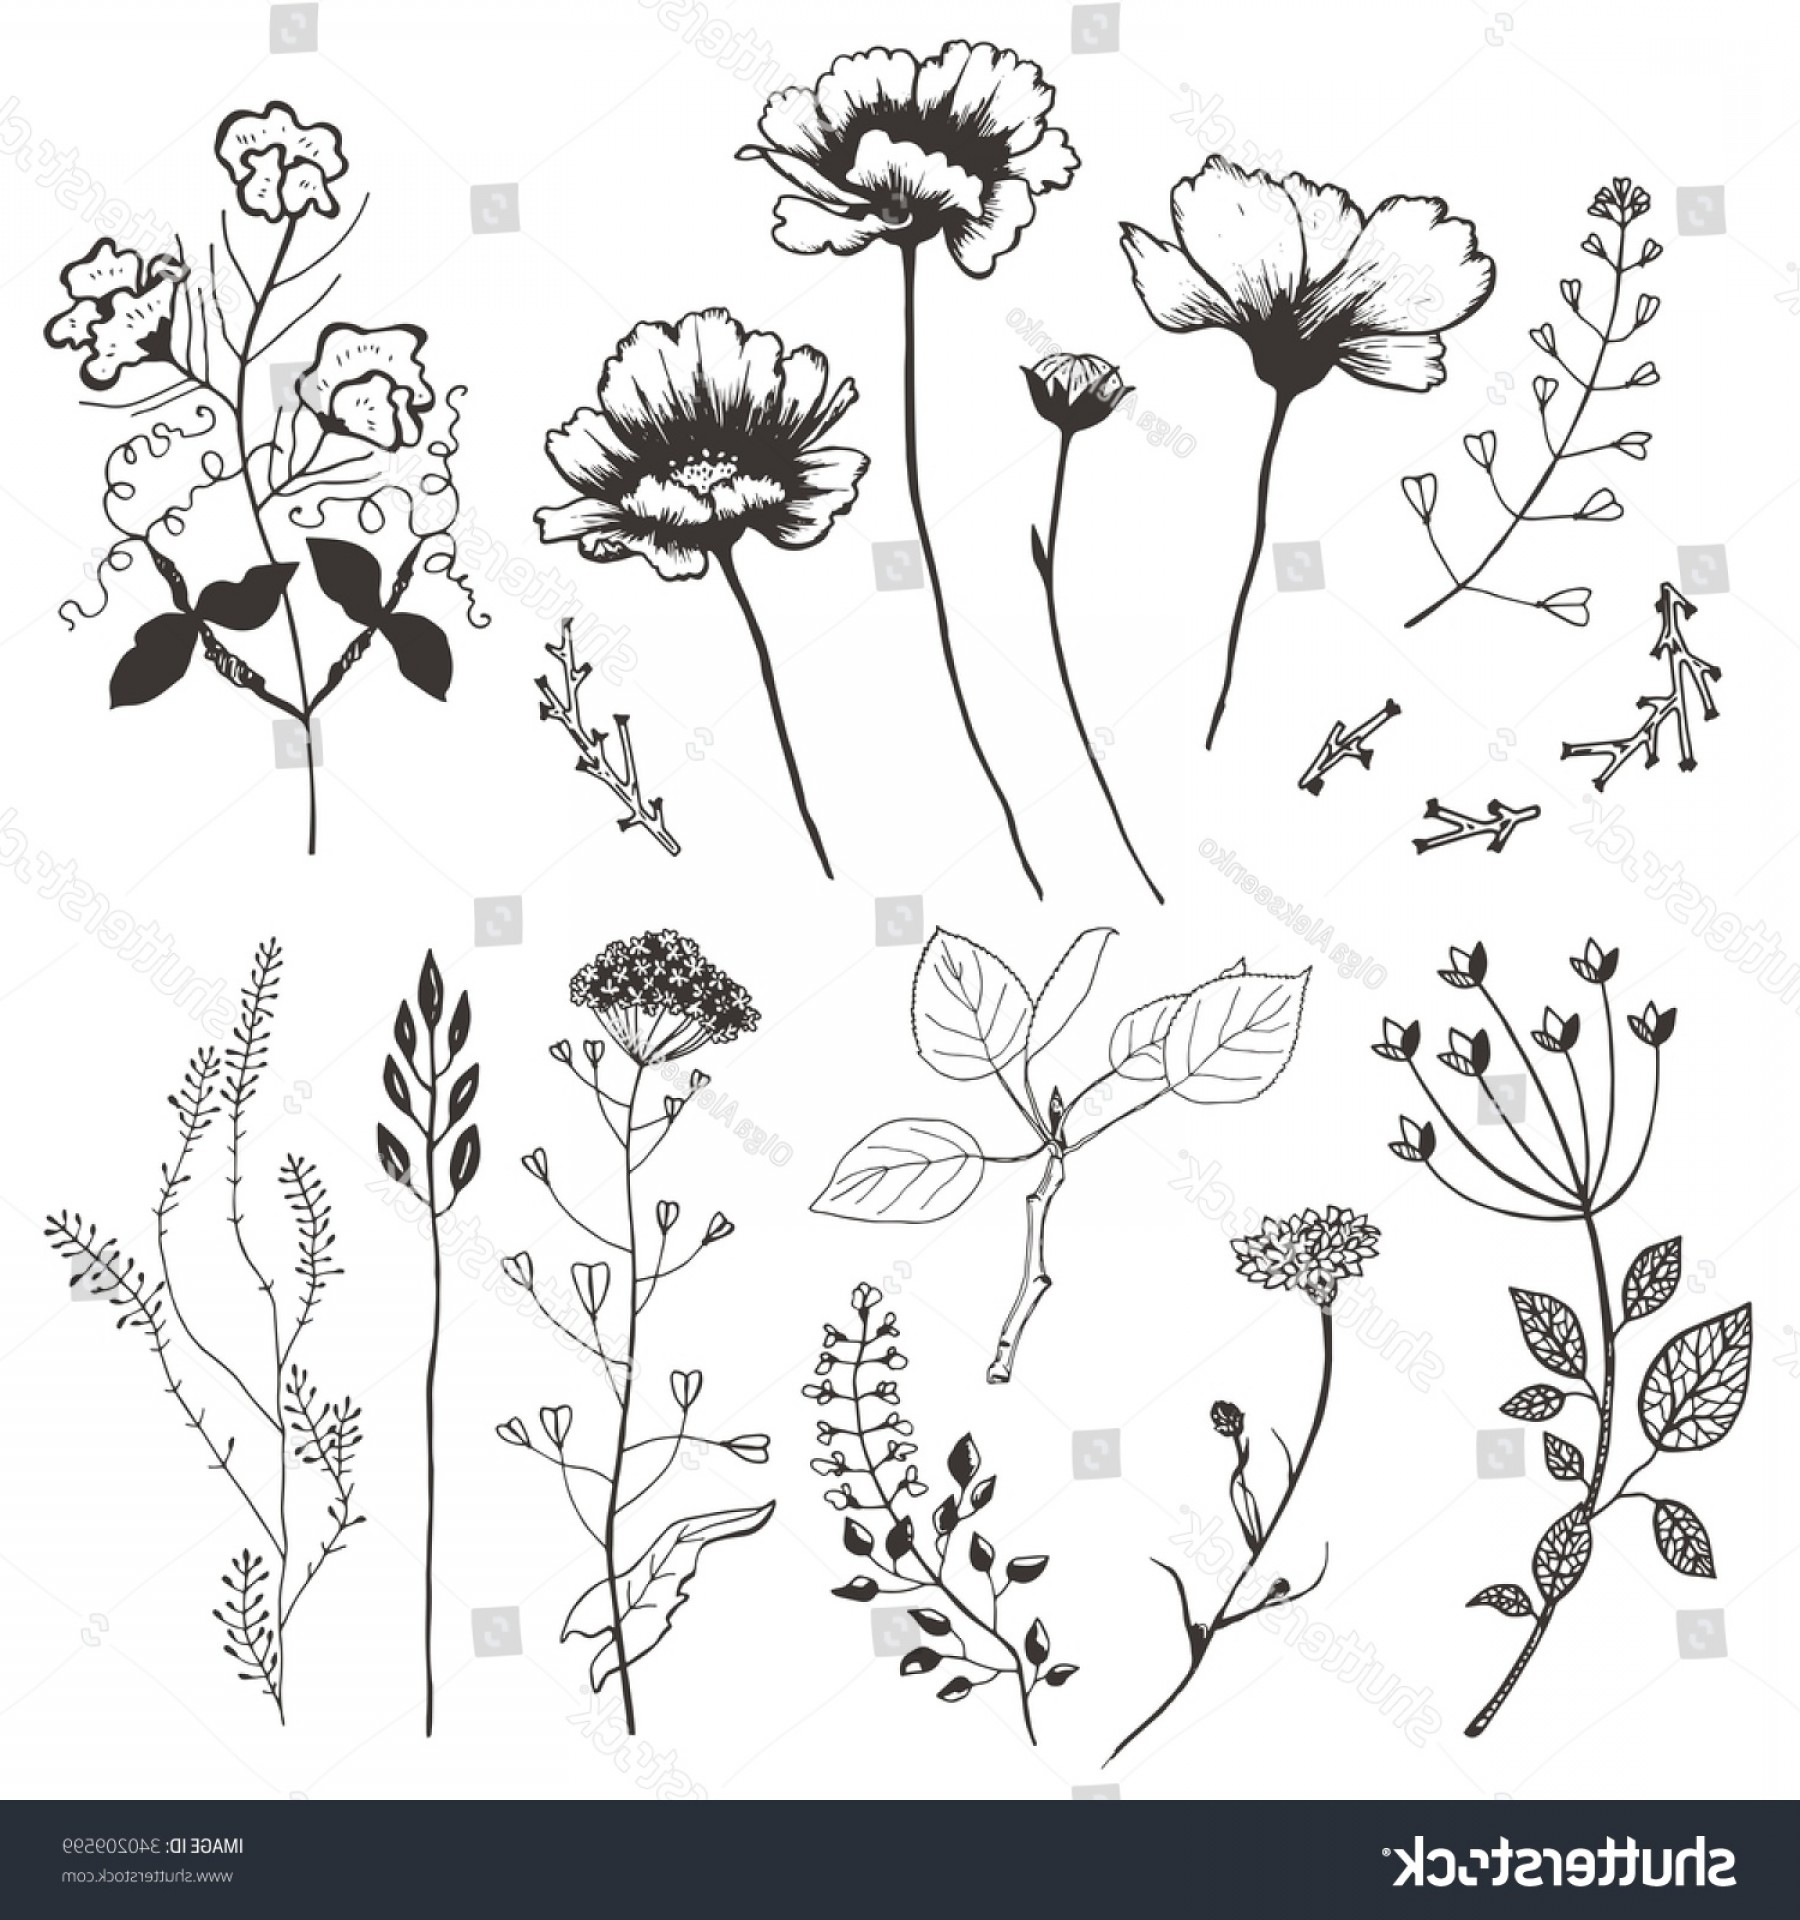 Wildflowers Outline Vector: Wildflowers Plants Hand Drawn Illustration